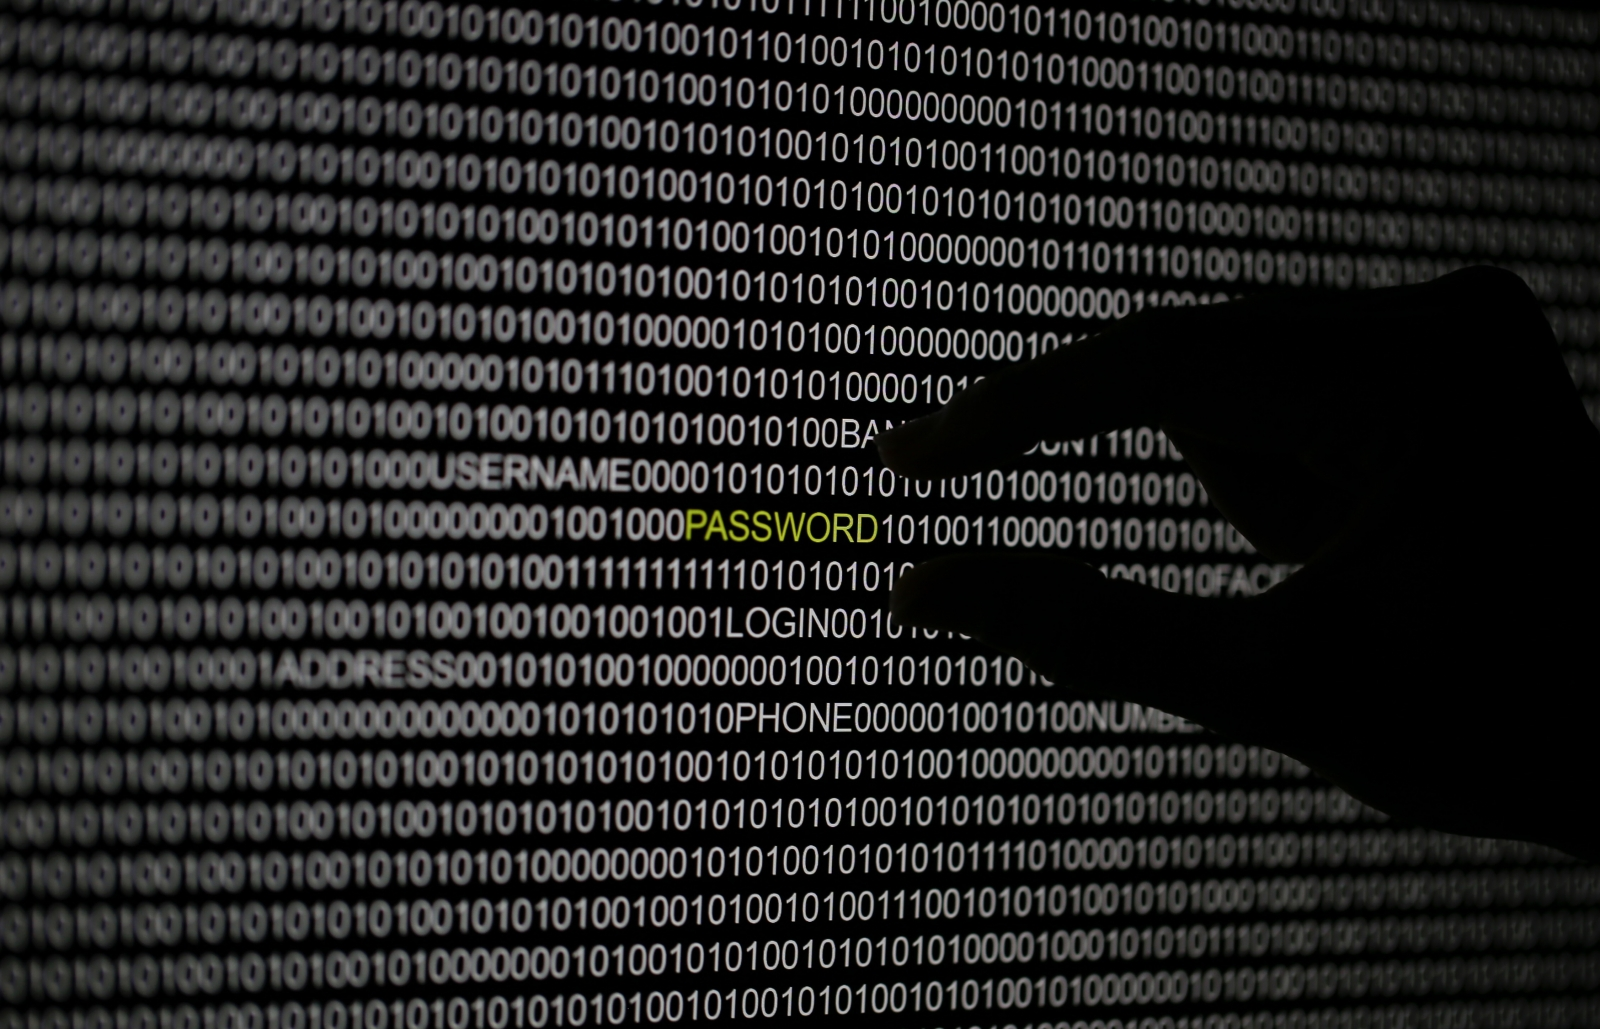 Silicon Valley translation firm with Google, Boeing and other clients hit with data leak